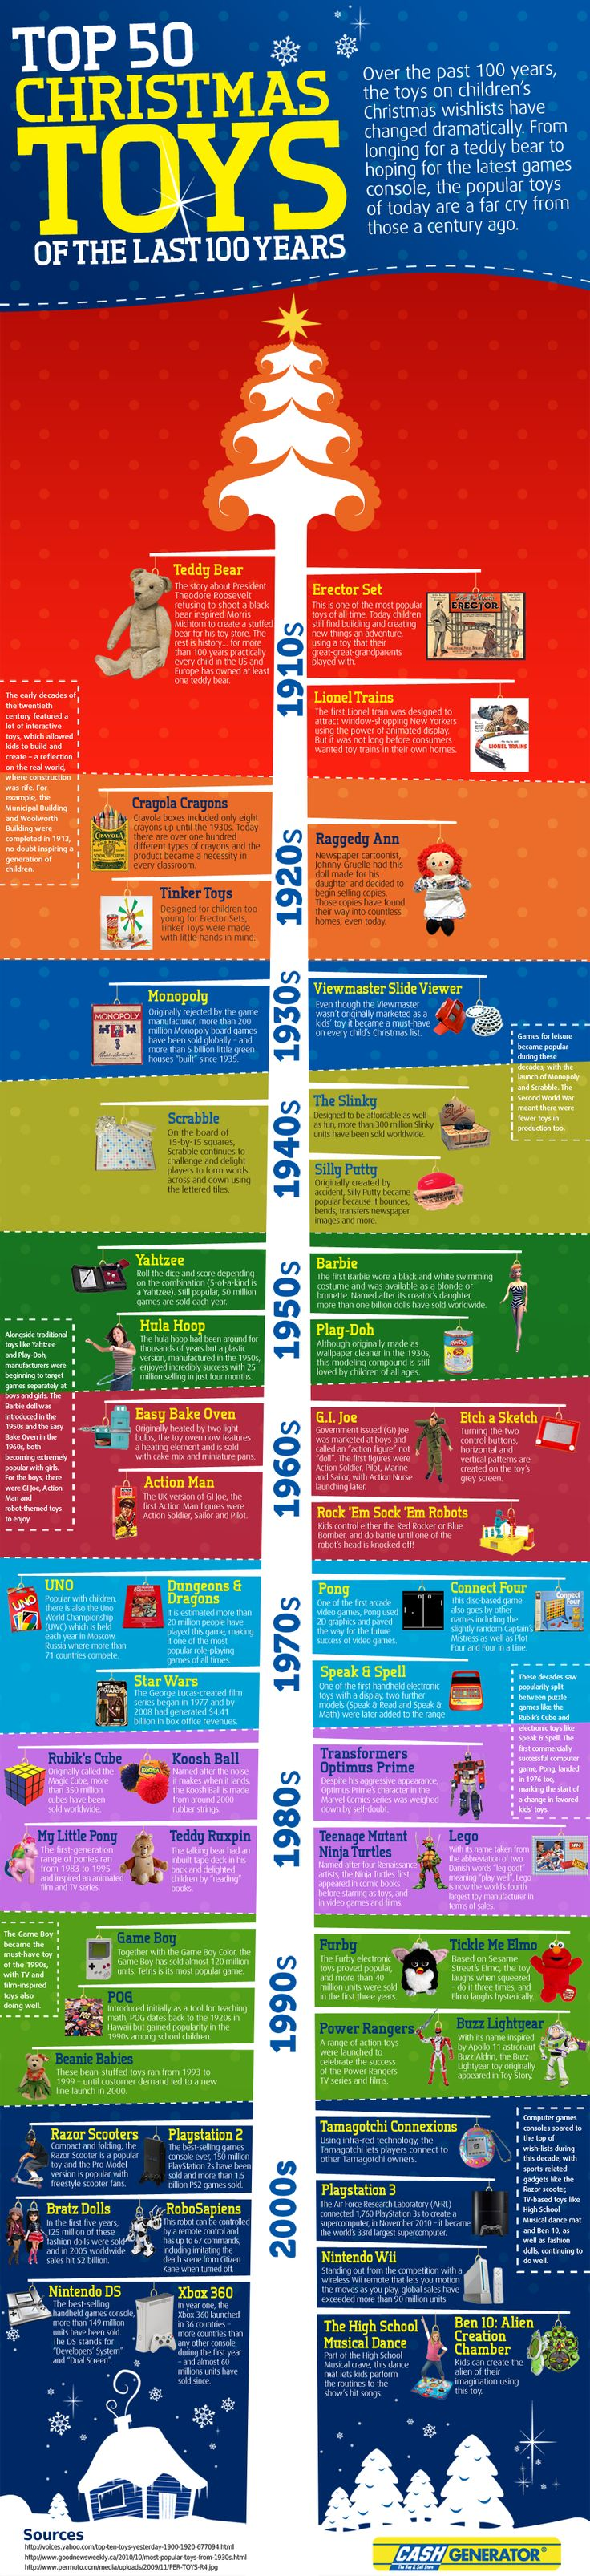 Top 50 Christmas Toys of the Past Century: Holiday, Tops, Years Infographic, Christmas Toys, 50 Christmas, 100 Years, Kid